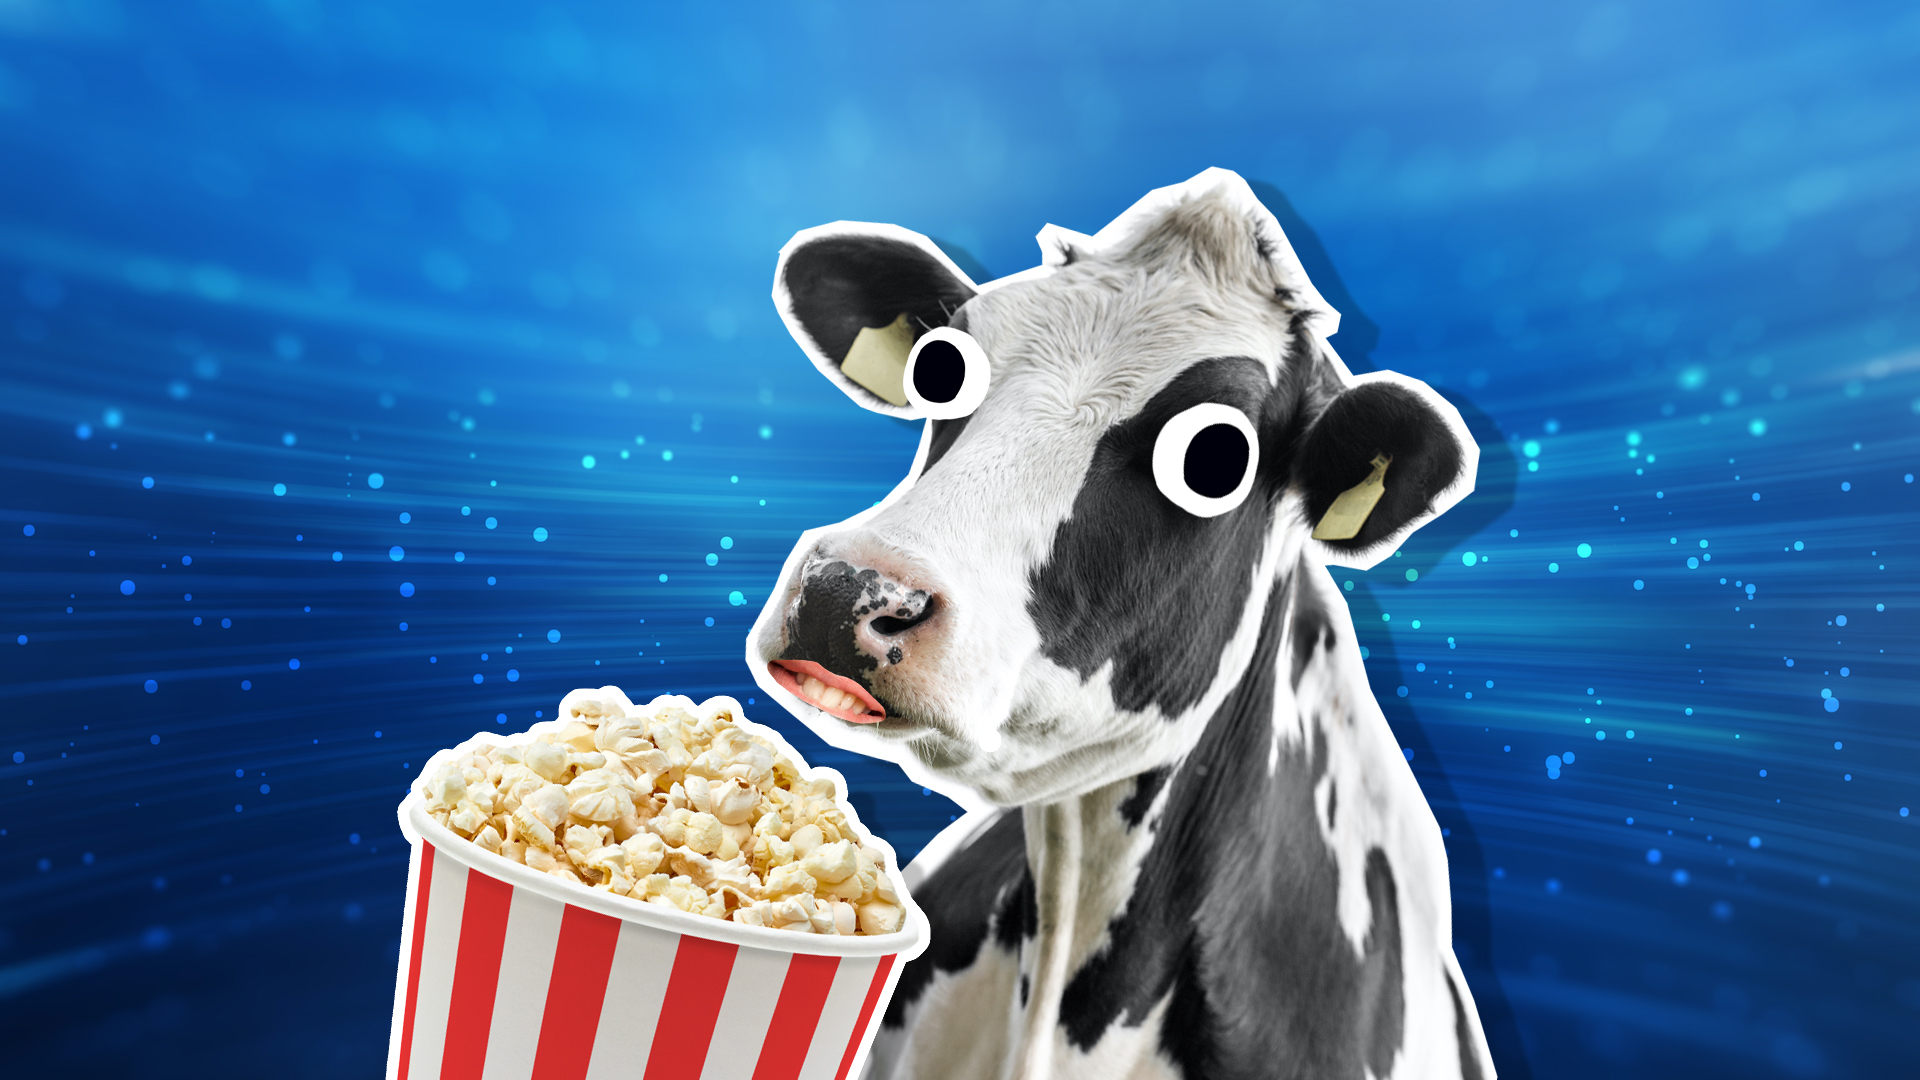 A cow eating popcorn